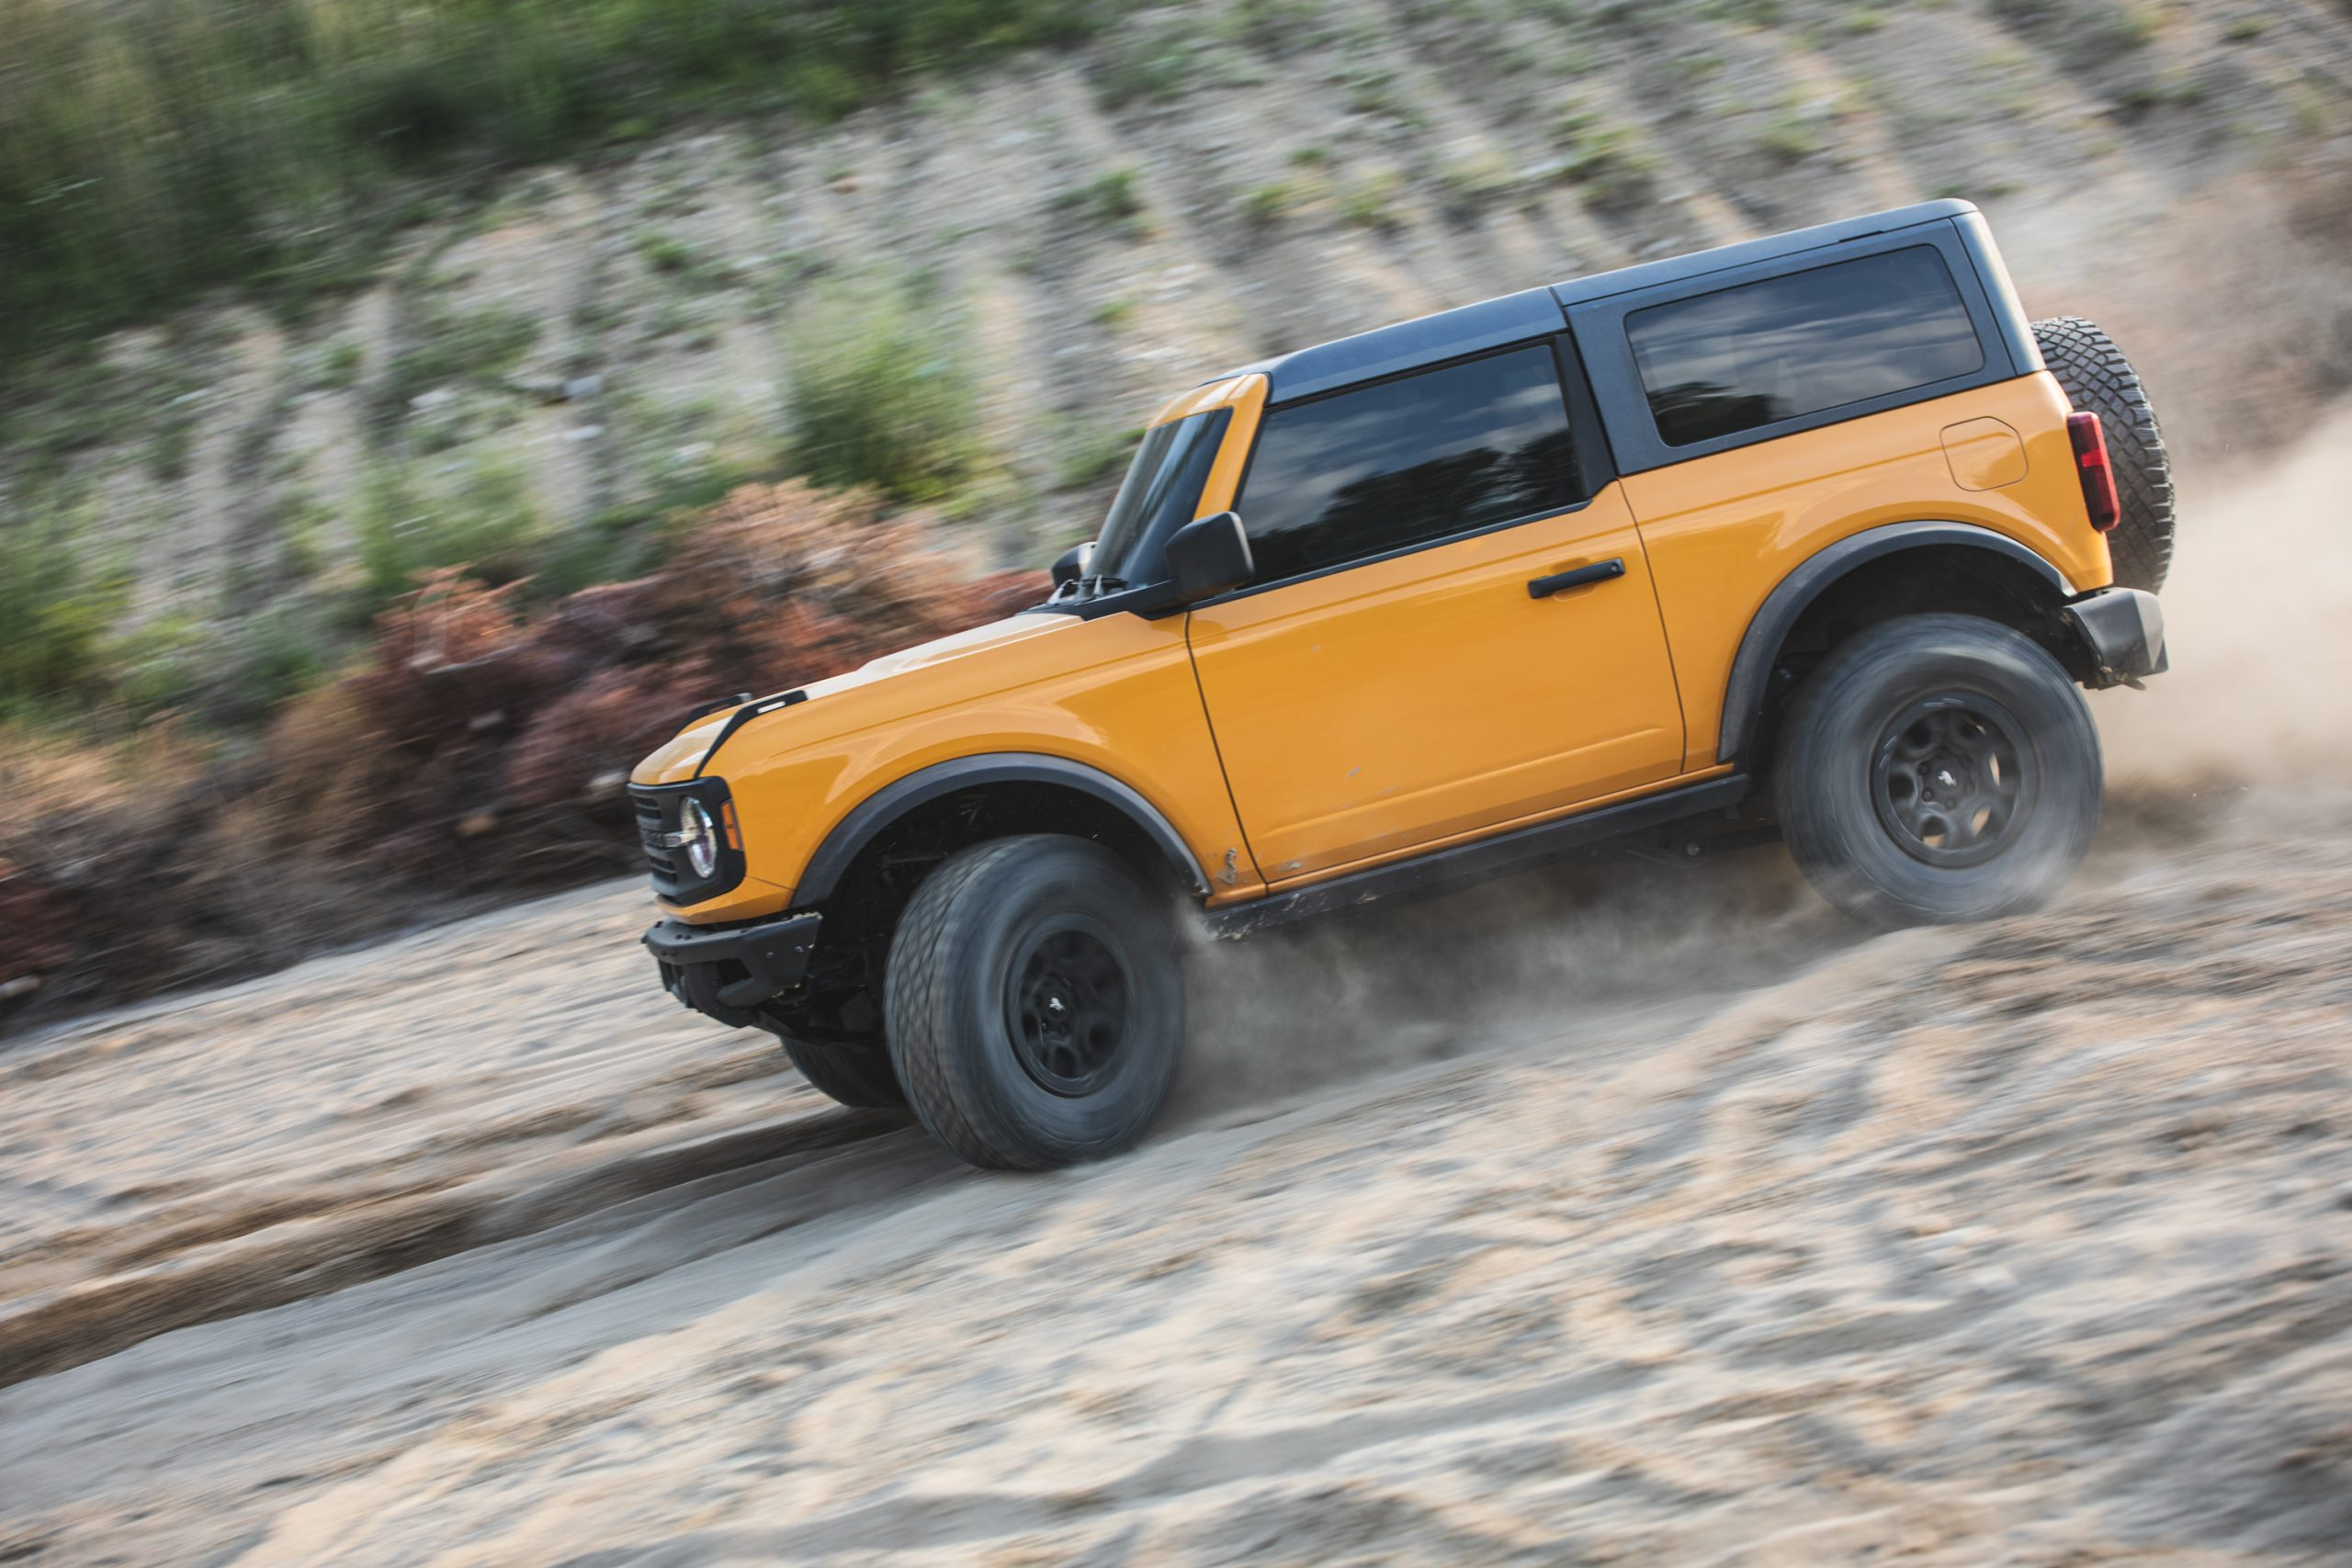 2021 Ford Bronco Two Door Side Sand Dune Action